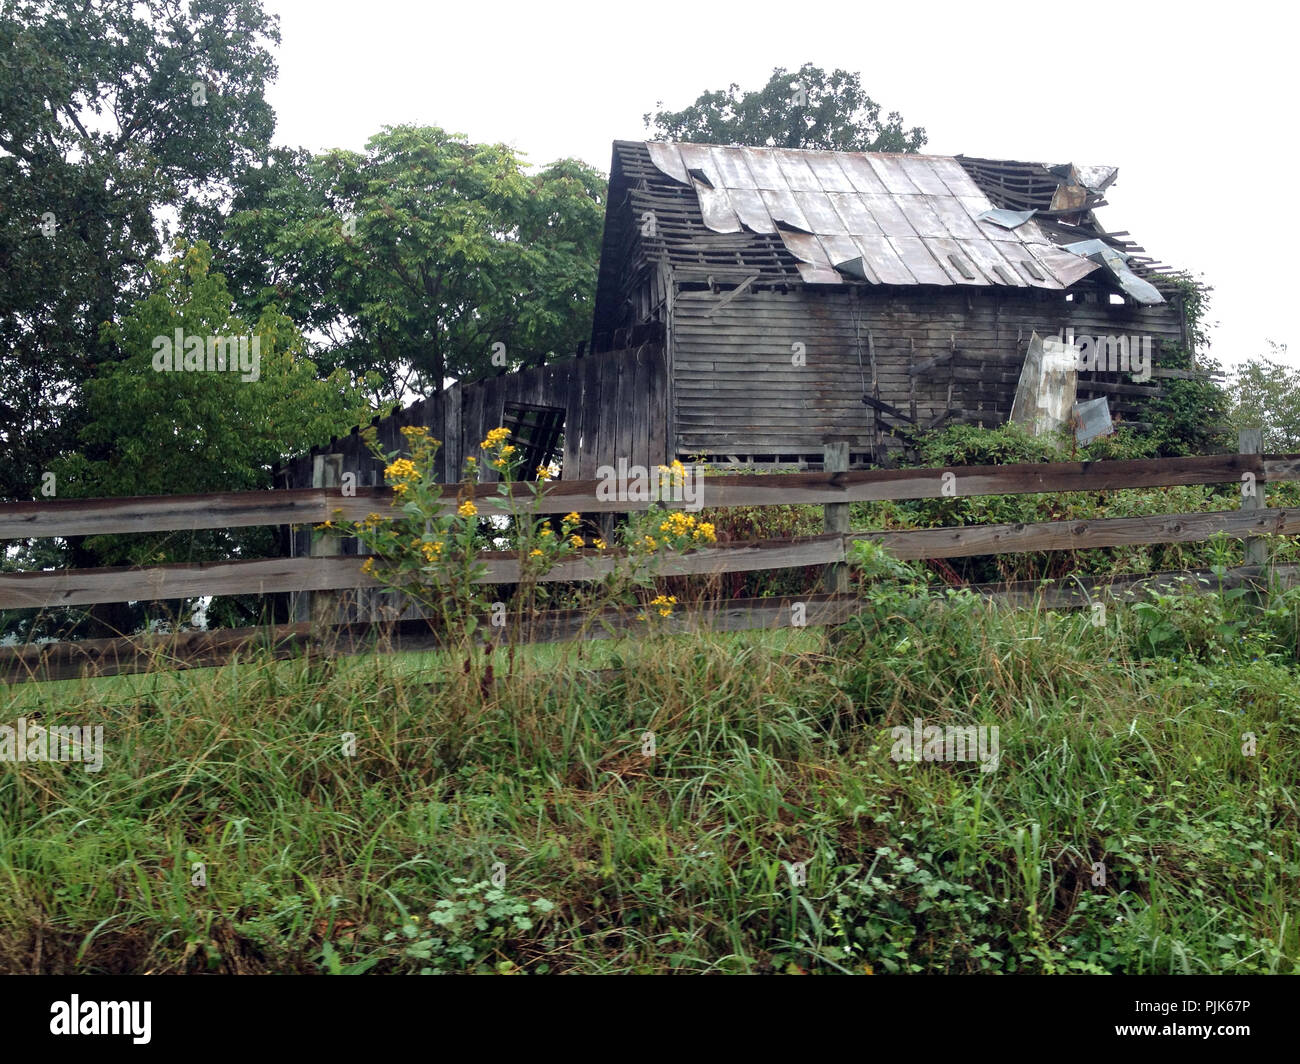 Falling barn in rural Virginia - Stock Image